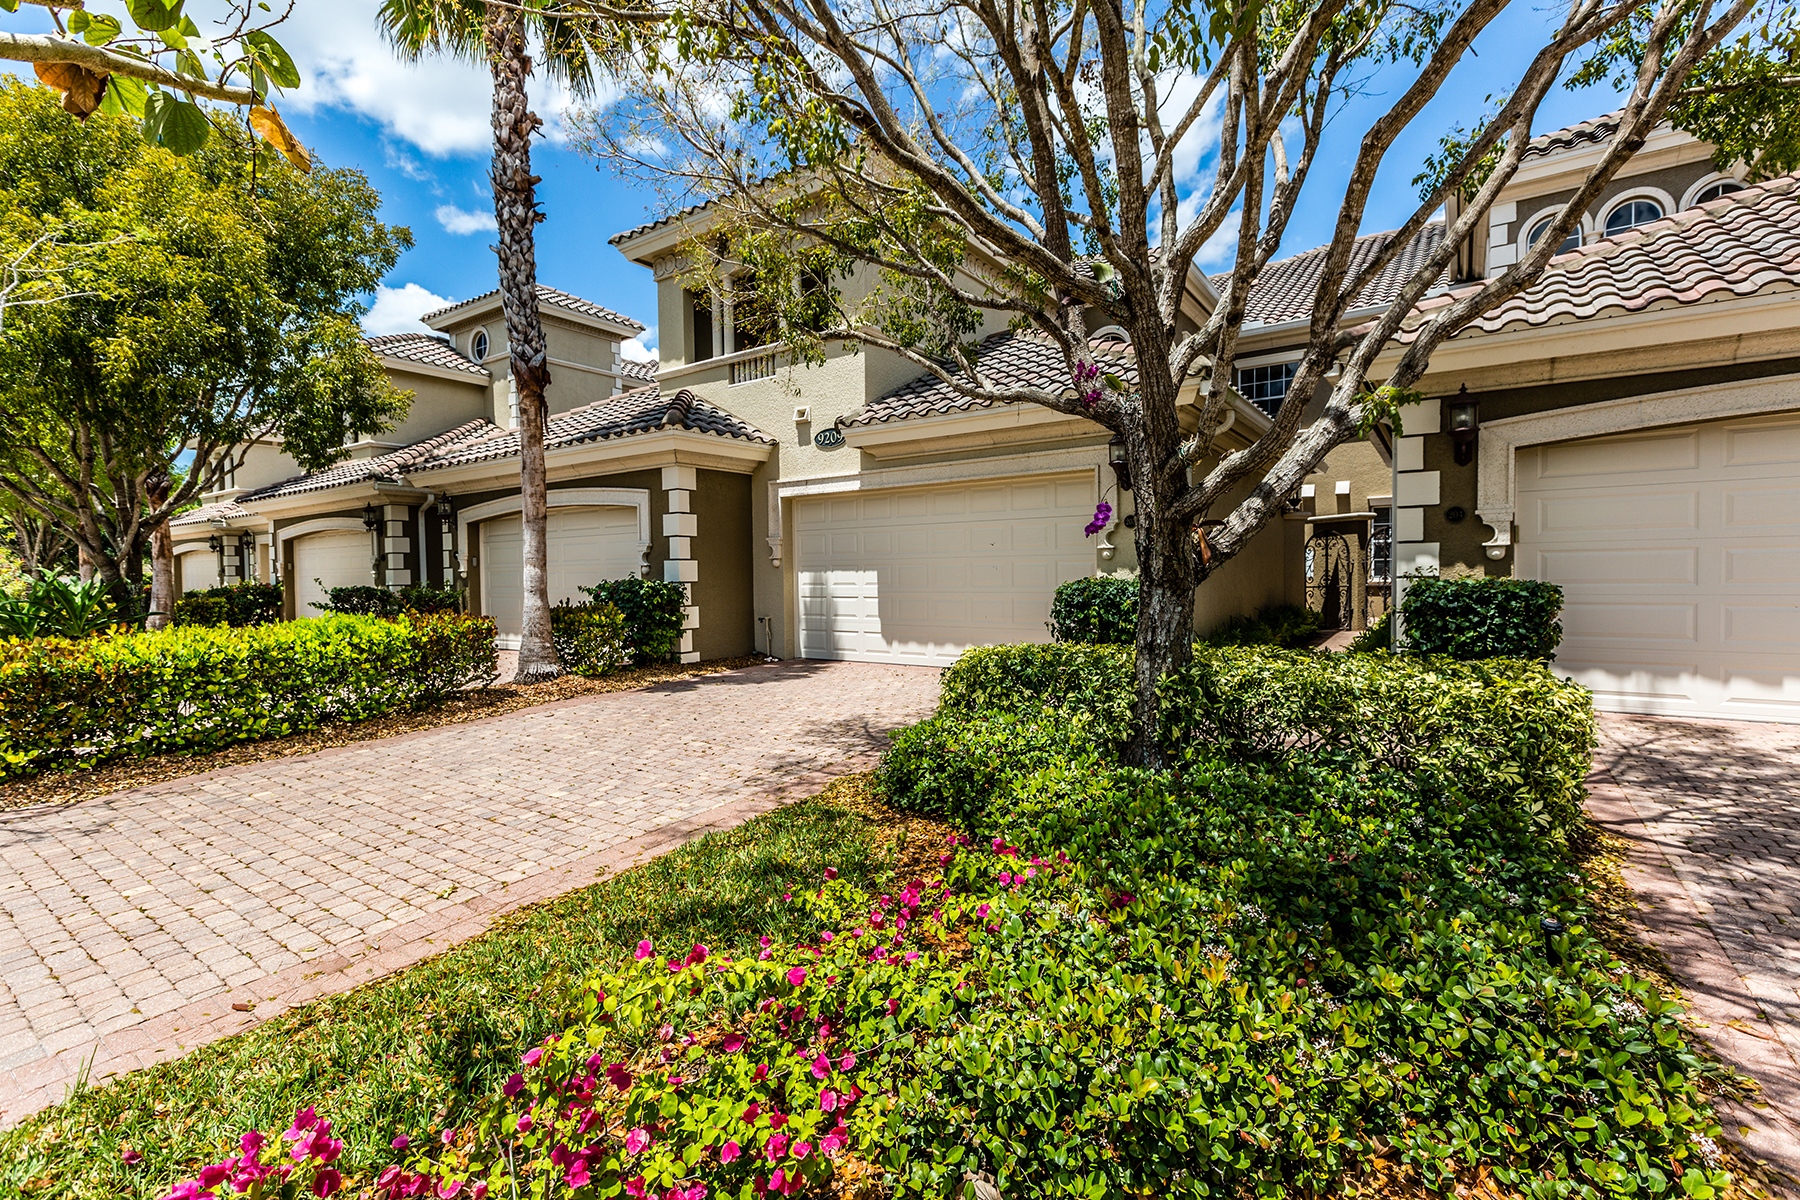 Condominium for Sale at FIDDLERS CREEK - FIDDLERS CREEK 9209 Museo Cir 203 Naples, Florida, 34114 United States